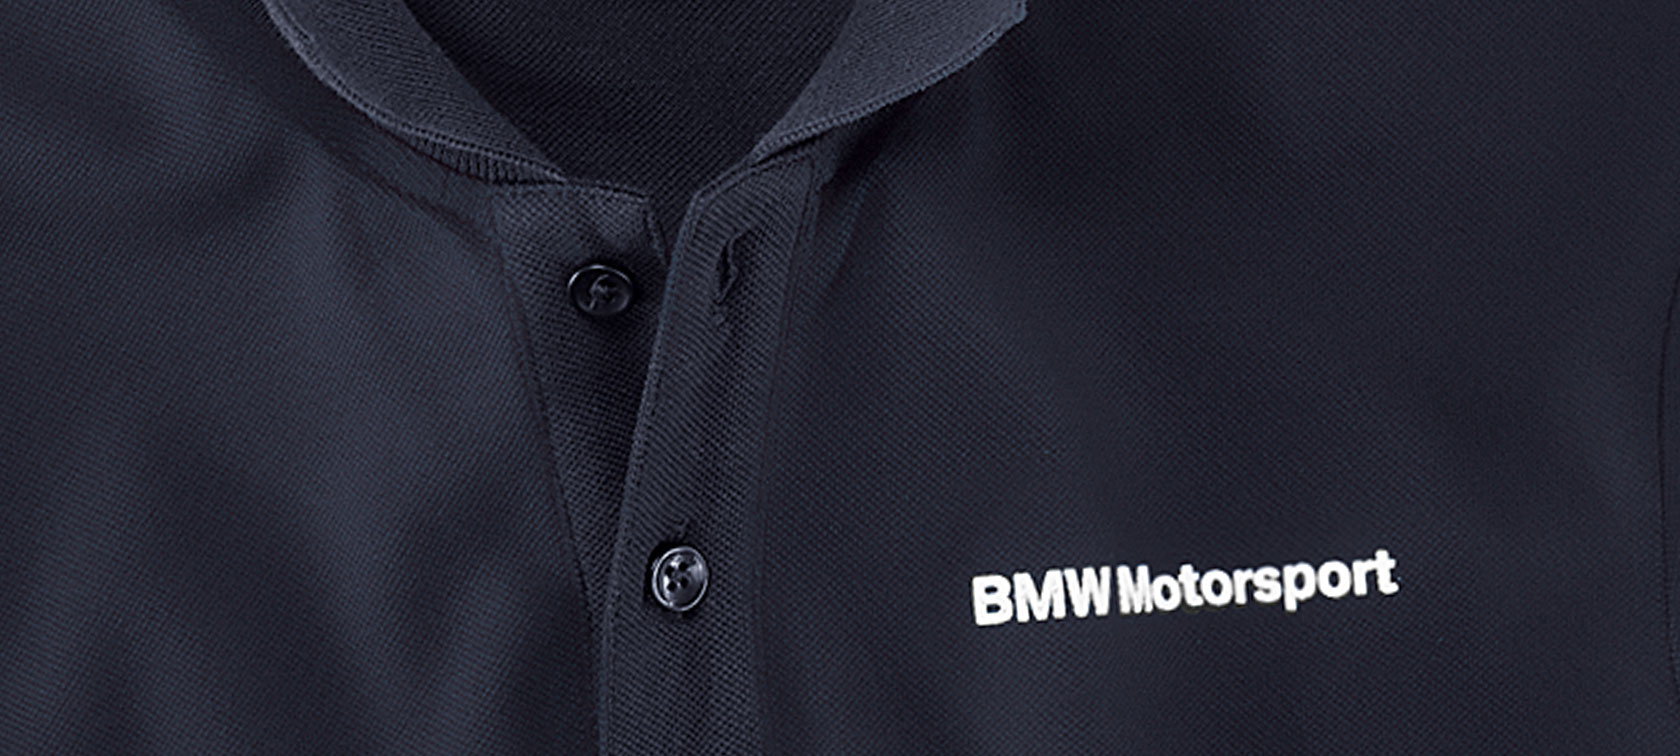 Polo BMW Motorsport, homme